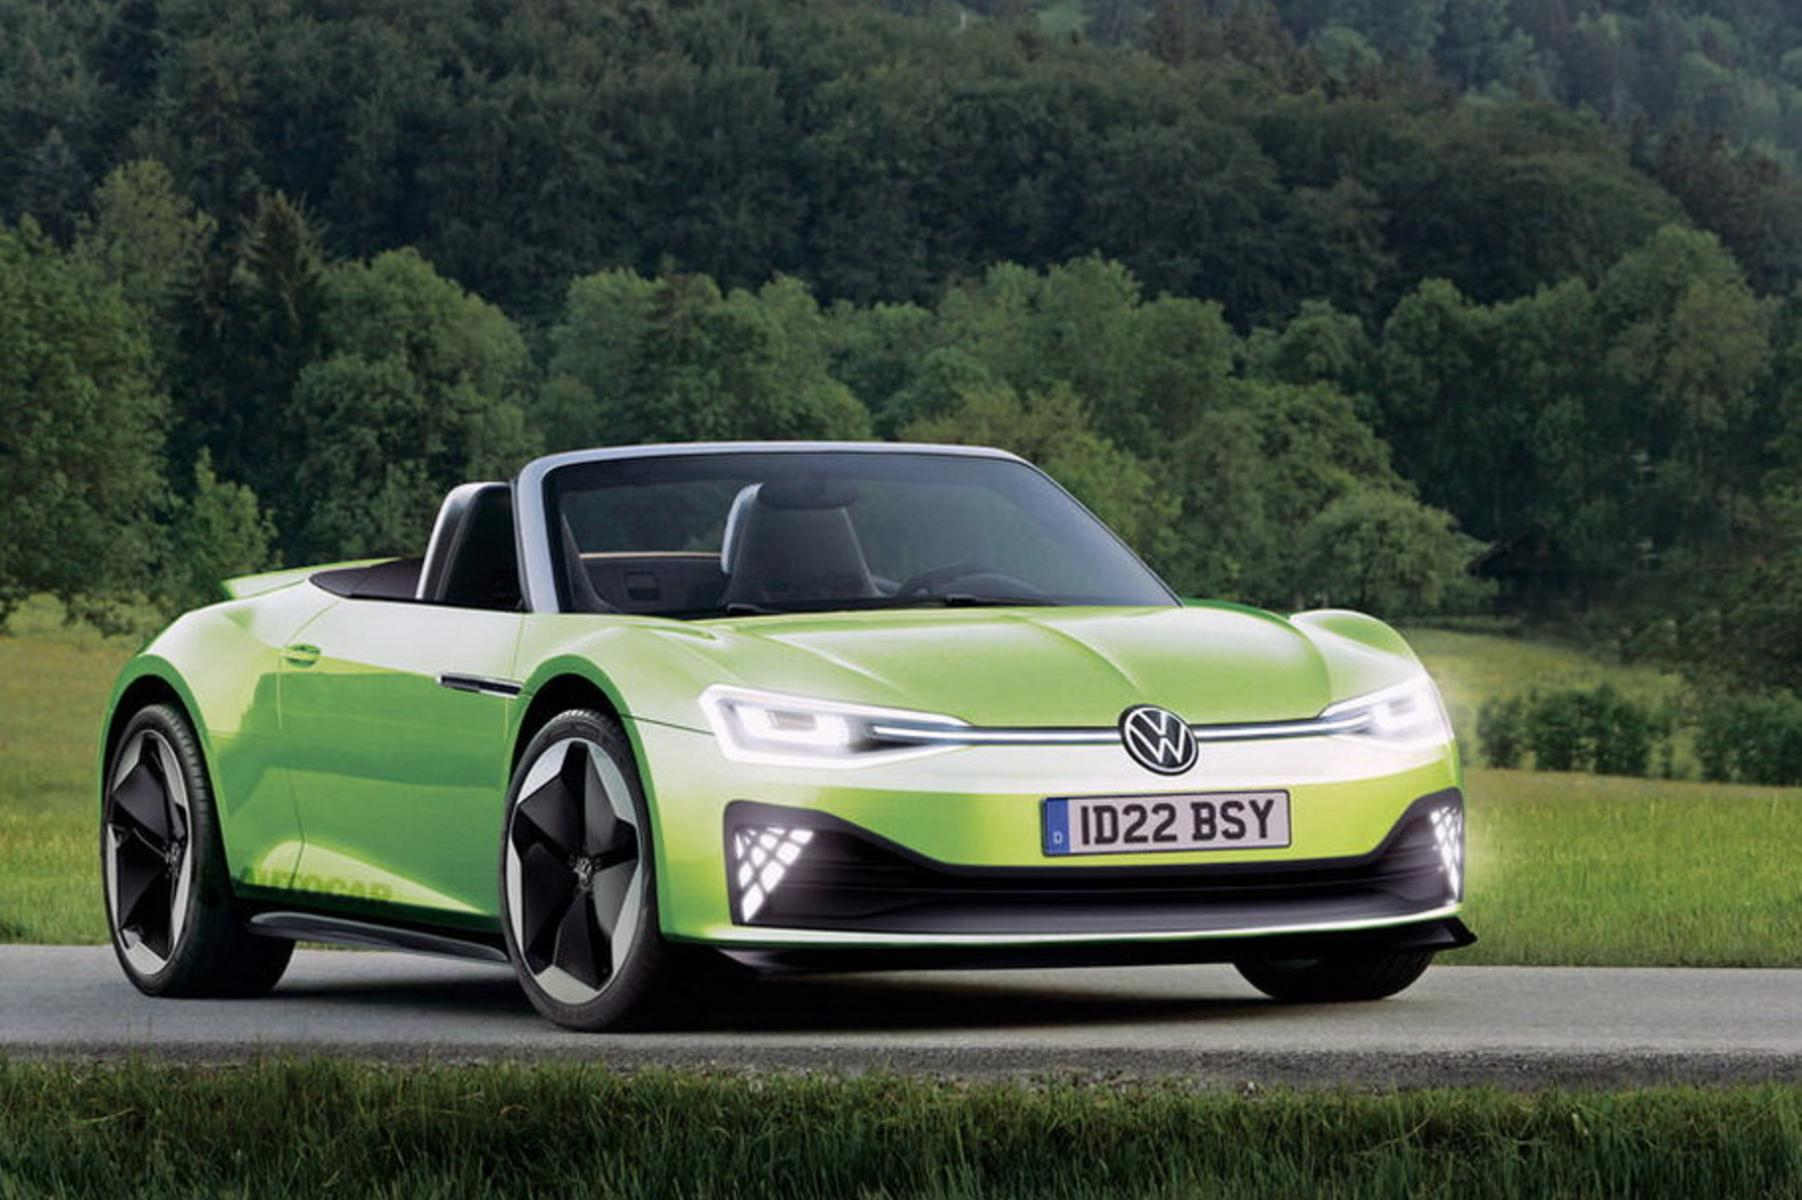 The German automotive giant is going to design a high-end sports EV based on the ID.R chassis and tech (see video). The car will boast a brand-new traction battery design and come out in roadster and coupe guises, the manufacturer claims.